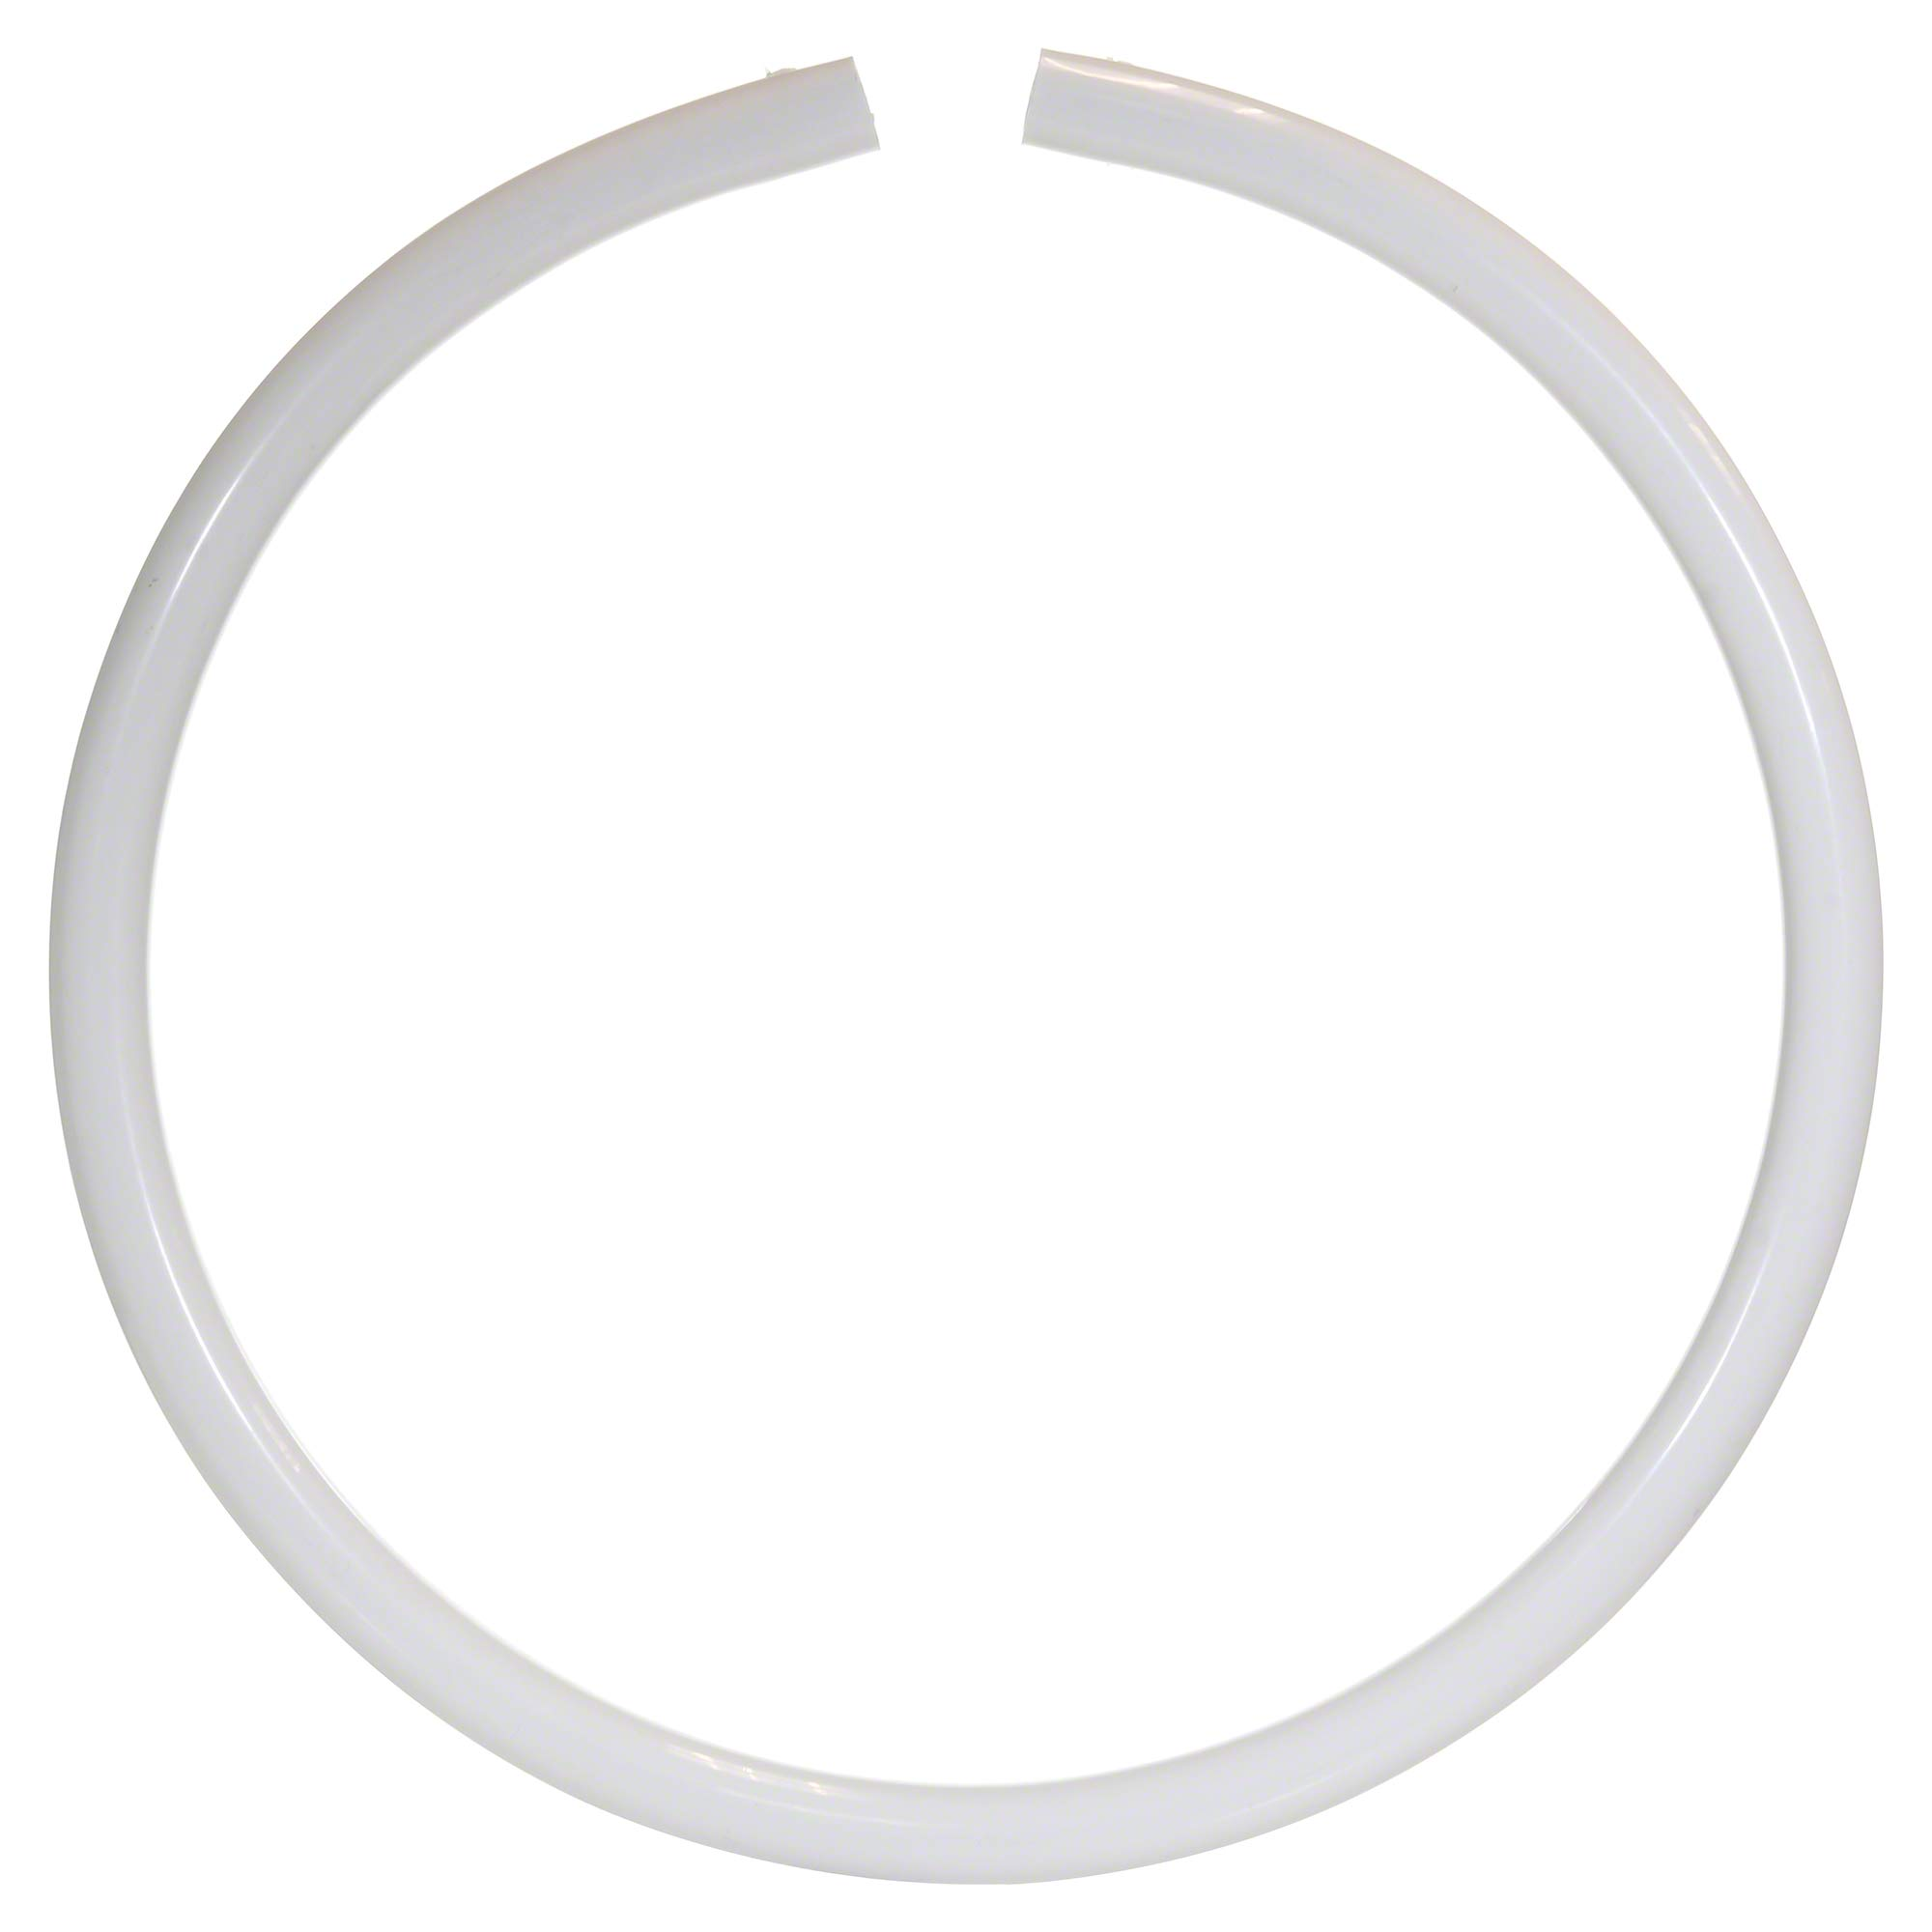 Replacement Rim for Poolmaster Splashback or Rebounder Basketball Games by Aquatic Technology, Inc.